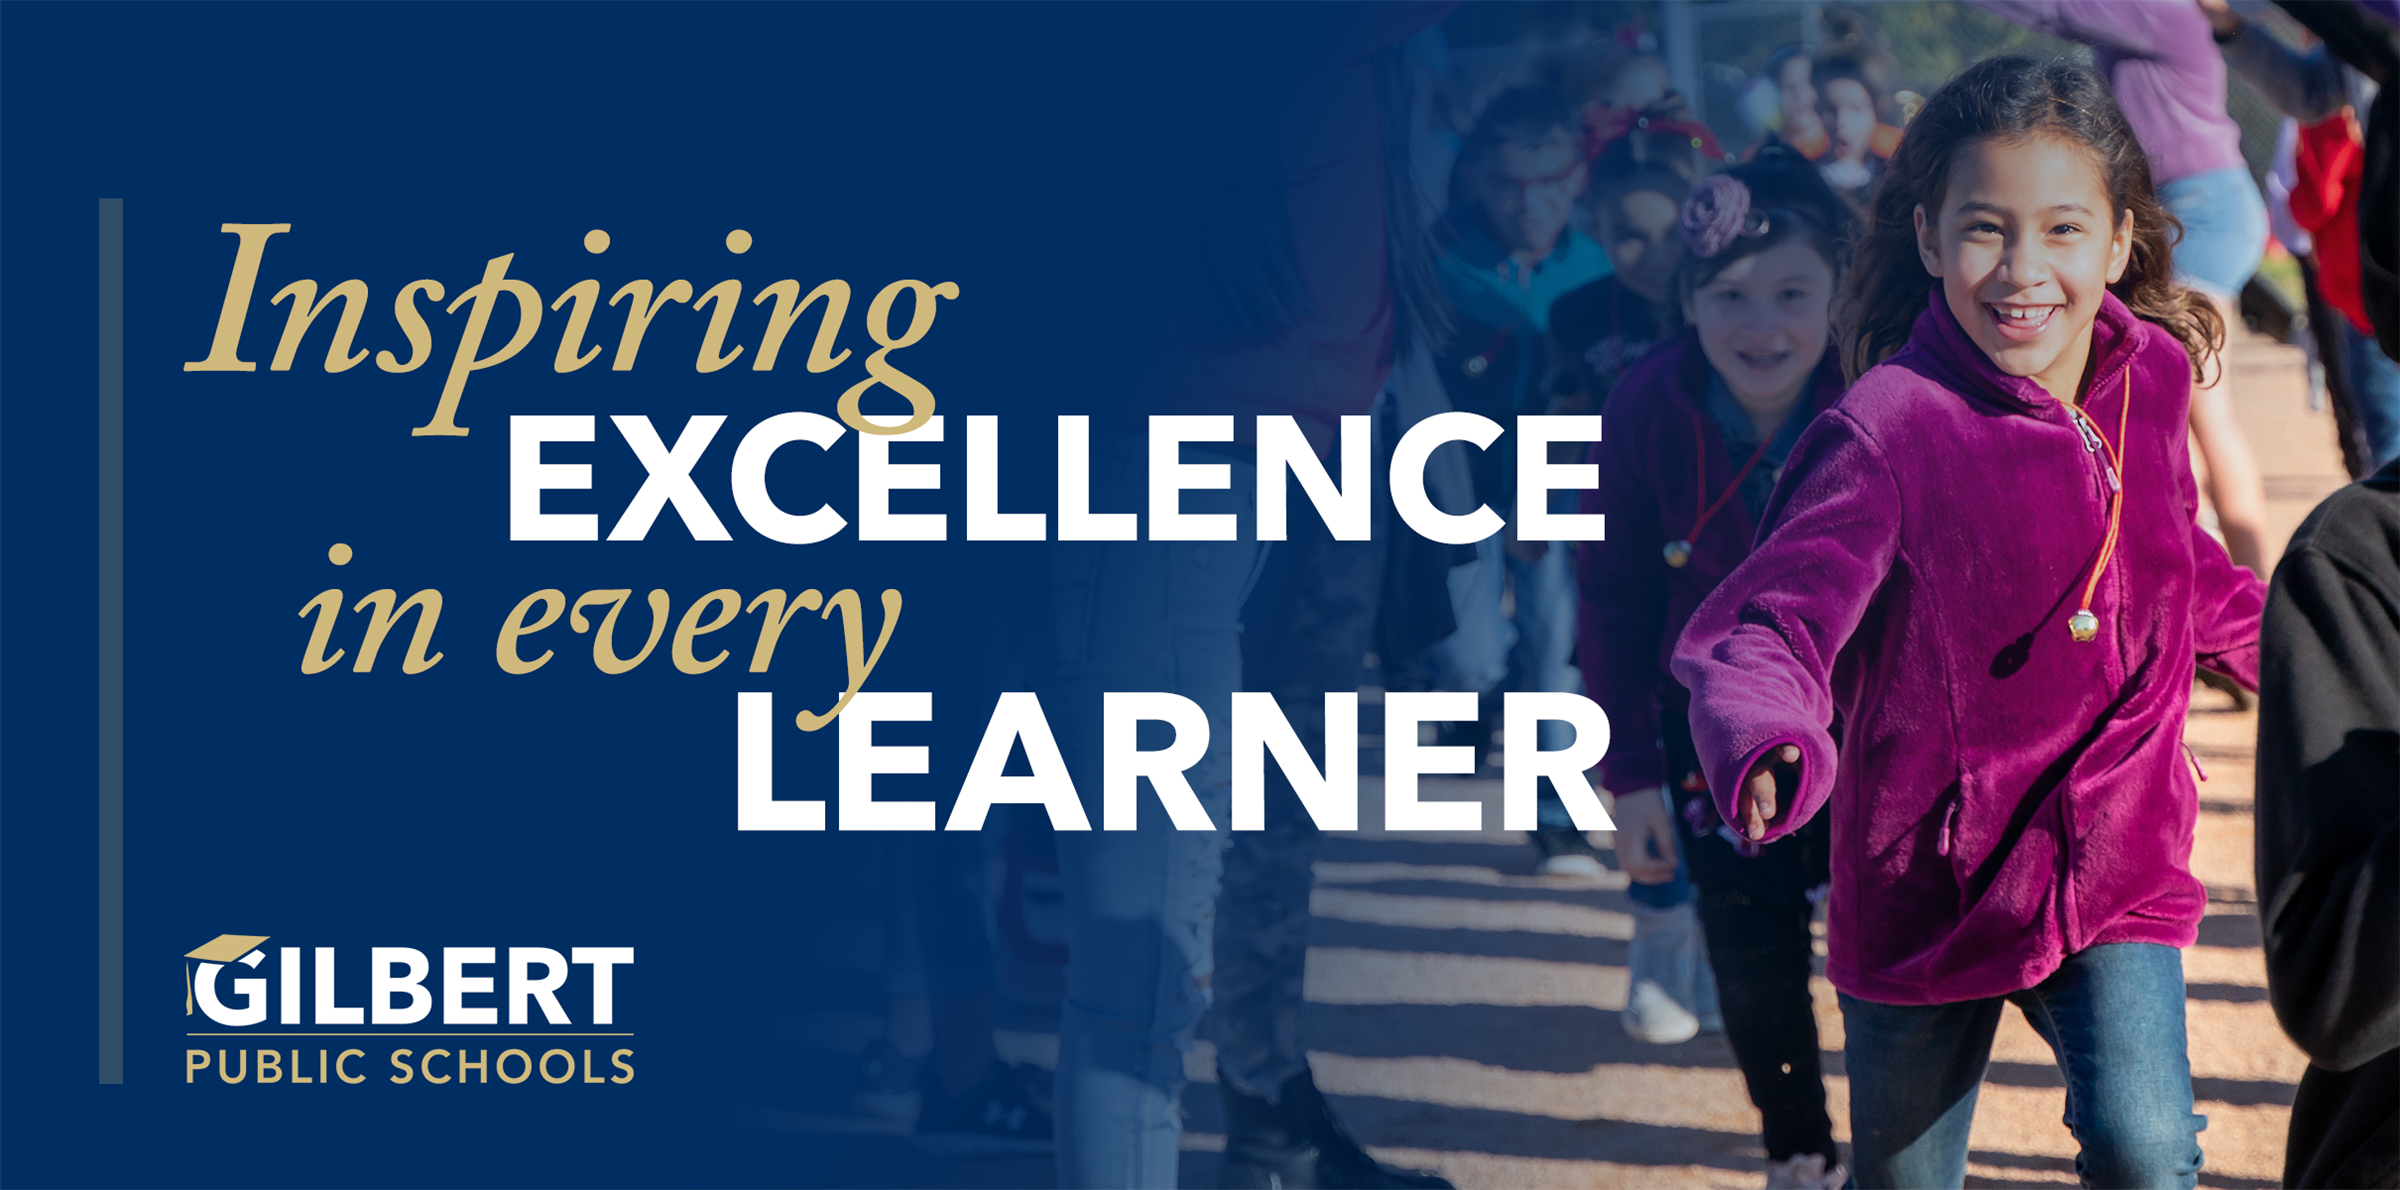 Gilbert Public Schools Inspiring Excellence in Every Learner